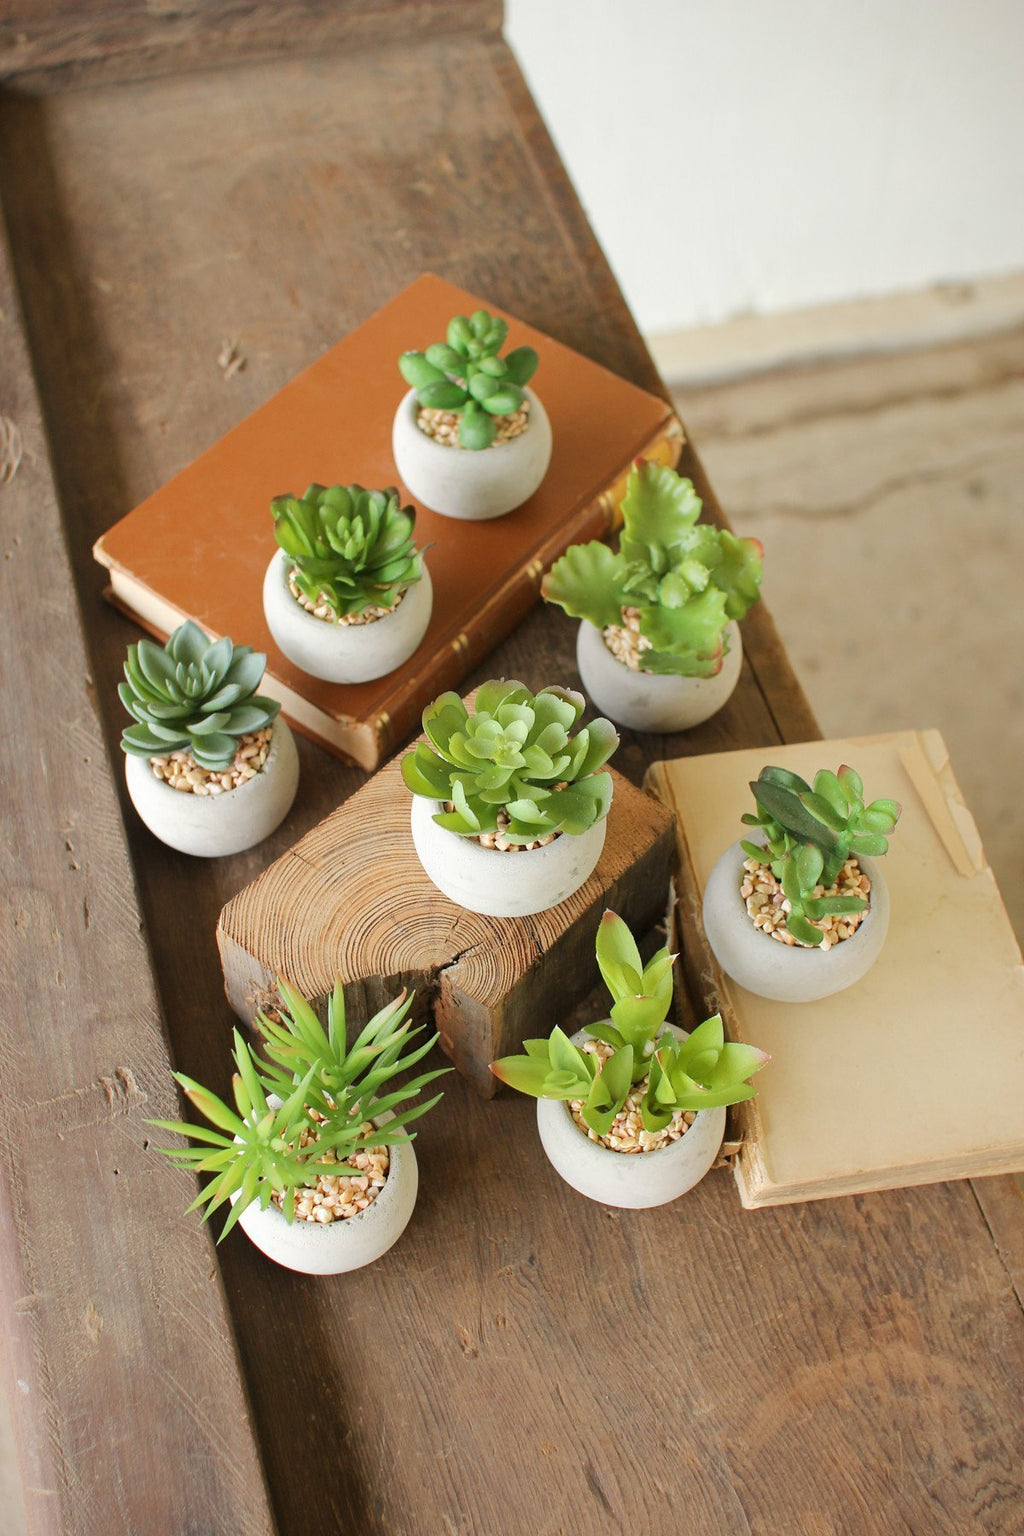 Urban Farmhouse Designs Small Succulents with Round Cement Pots | Set of 8